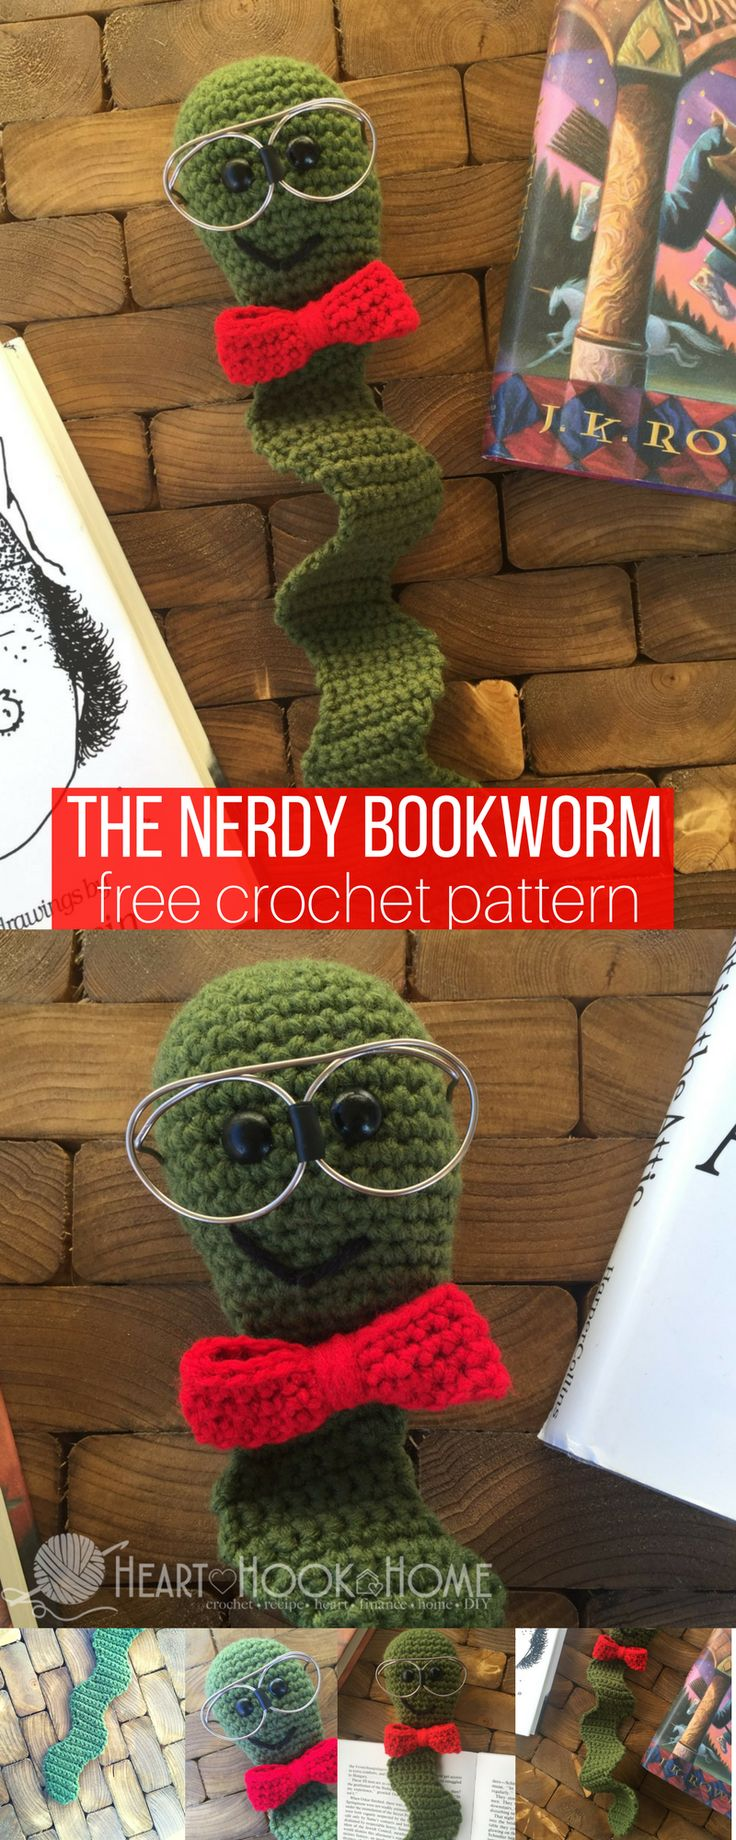 The Nerdy Bookworm Crochet Pattern